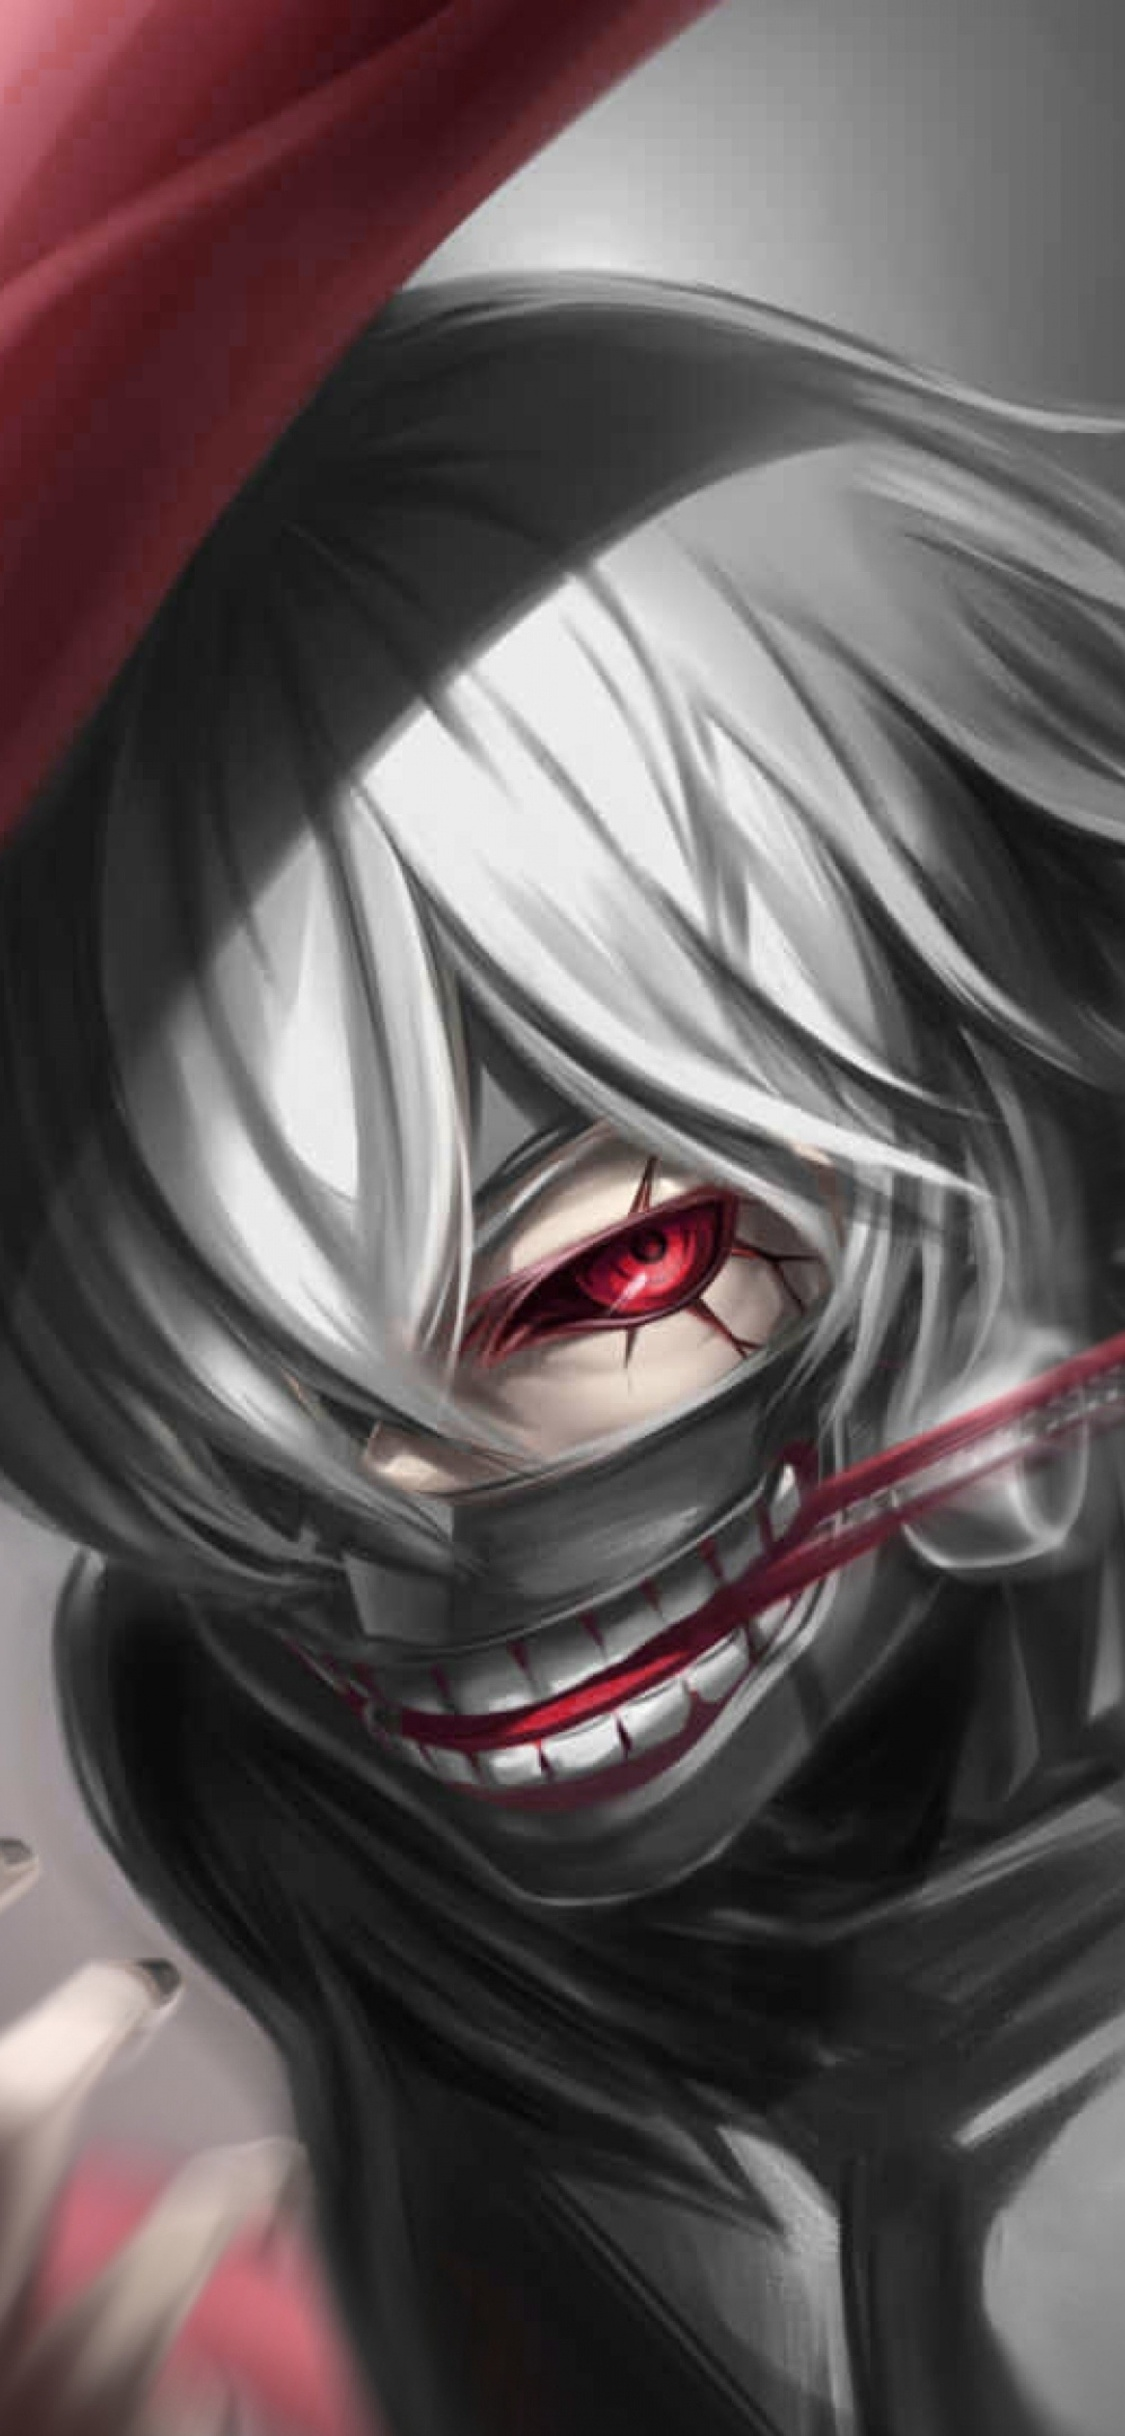 Use live and dynamic wallpapers to add some motion to your phone. 1125x2436 Tokyo Ghoul Kaneki Ken 4k Iphone XS,Iphone 10 ...